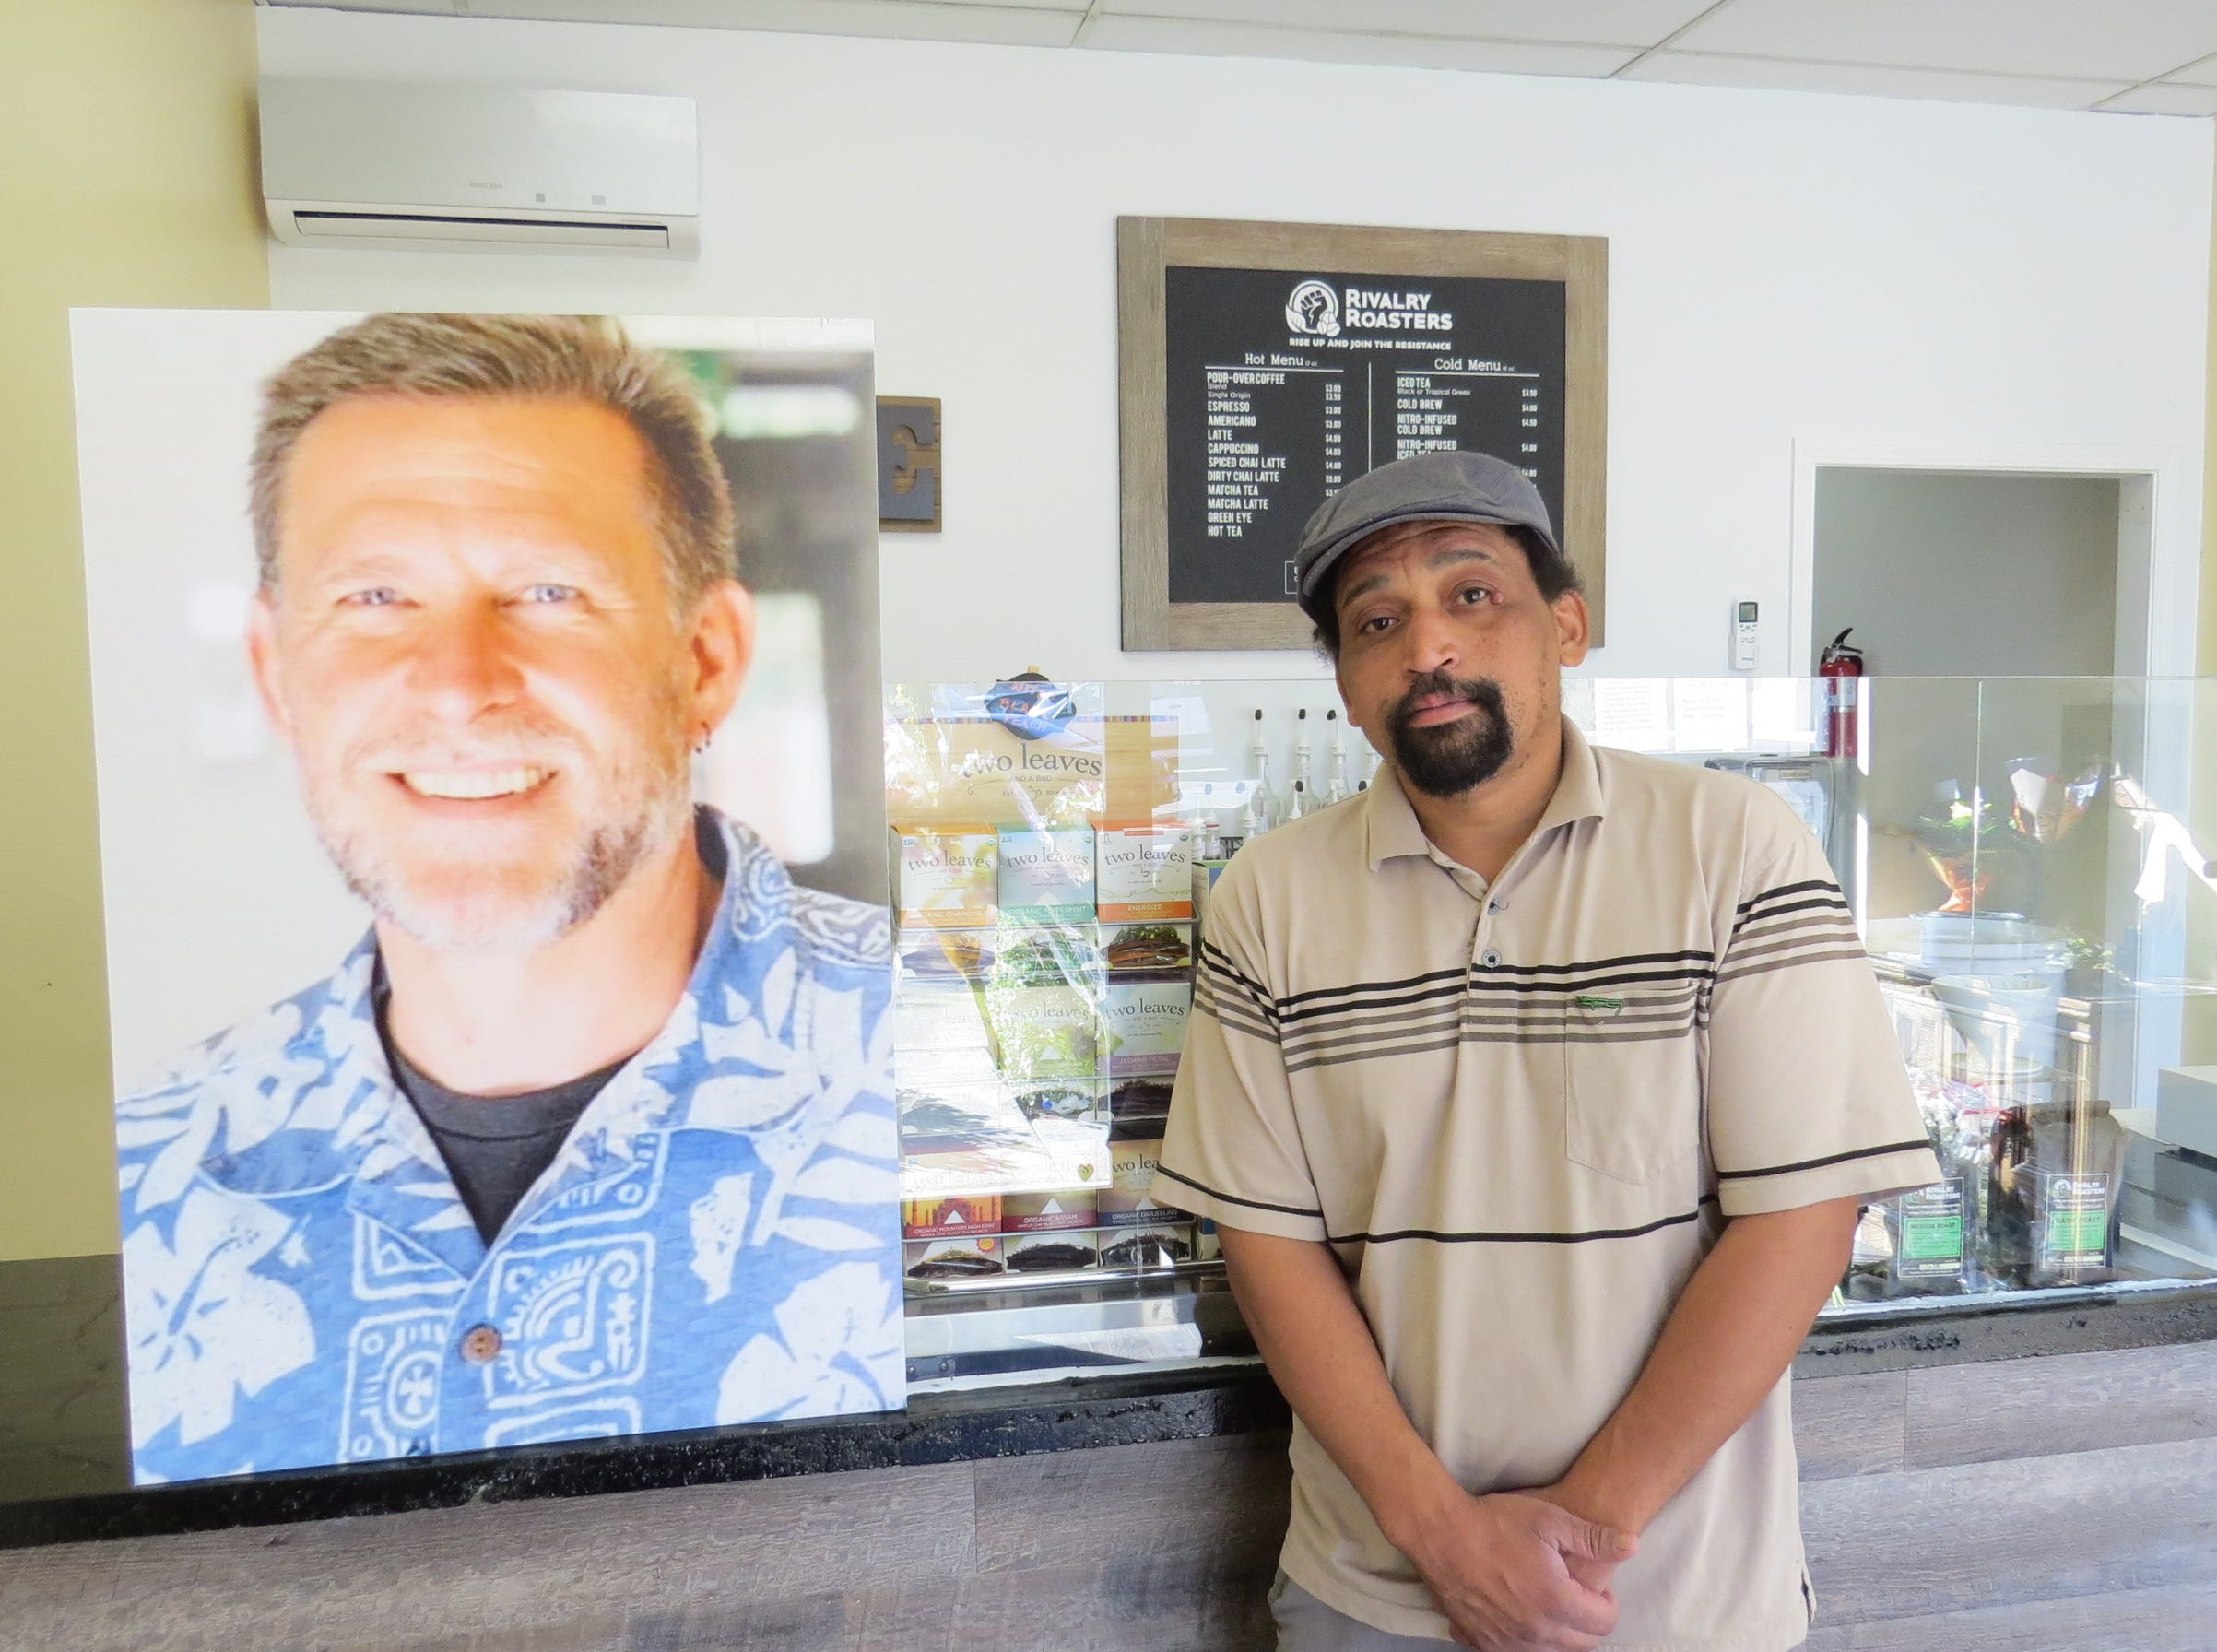 Cafe Society: After Borderline shooting, business owners weigh decision to reopen